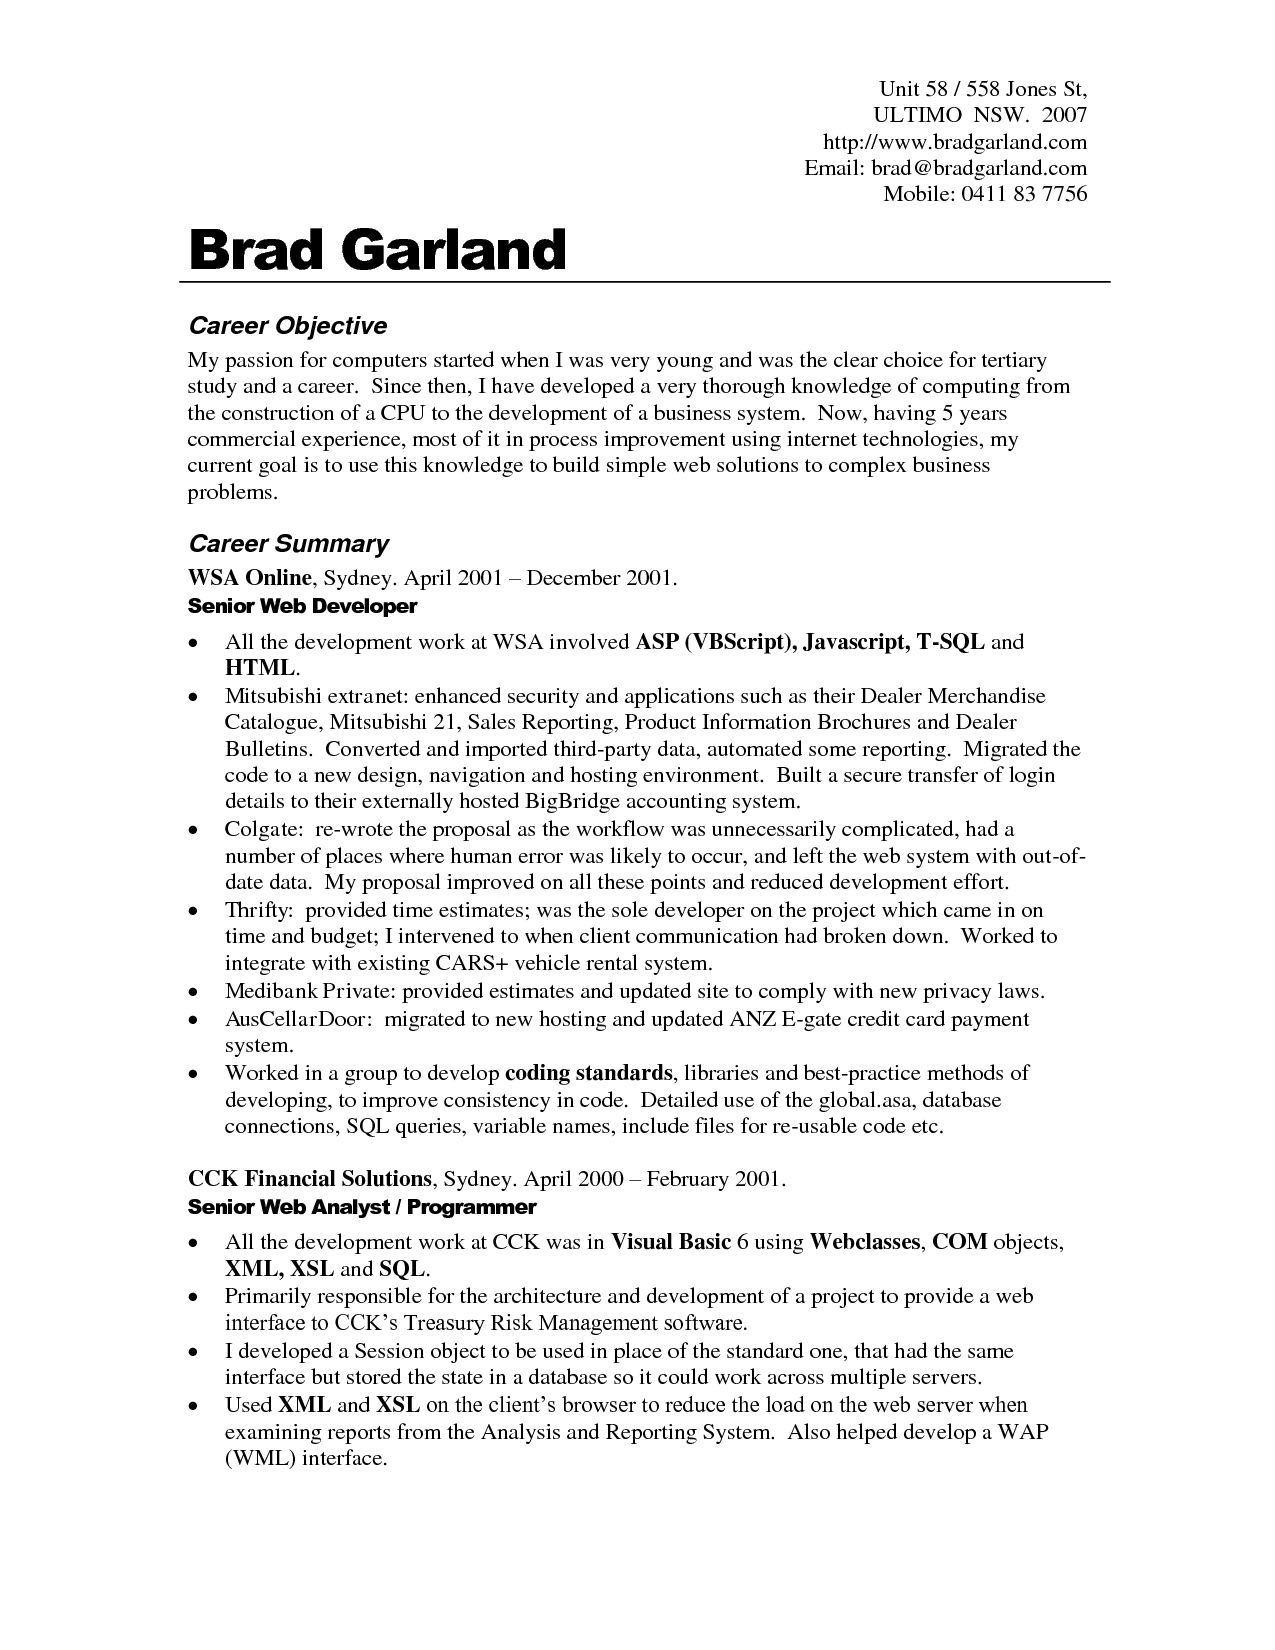 Example Of Objective Fair Resume Examples Job Objective  Sample Resume Entry Level And .